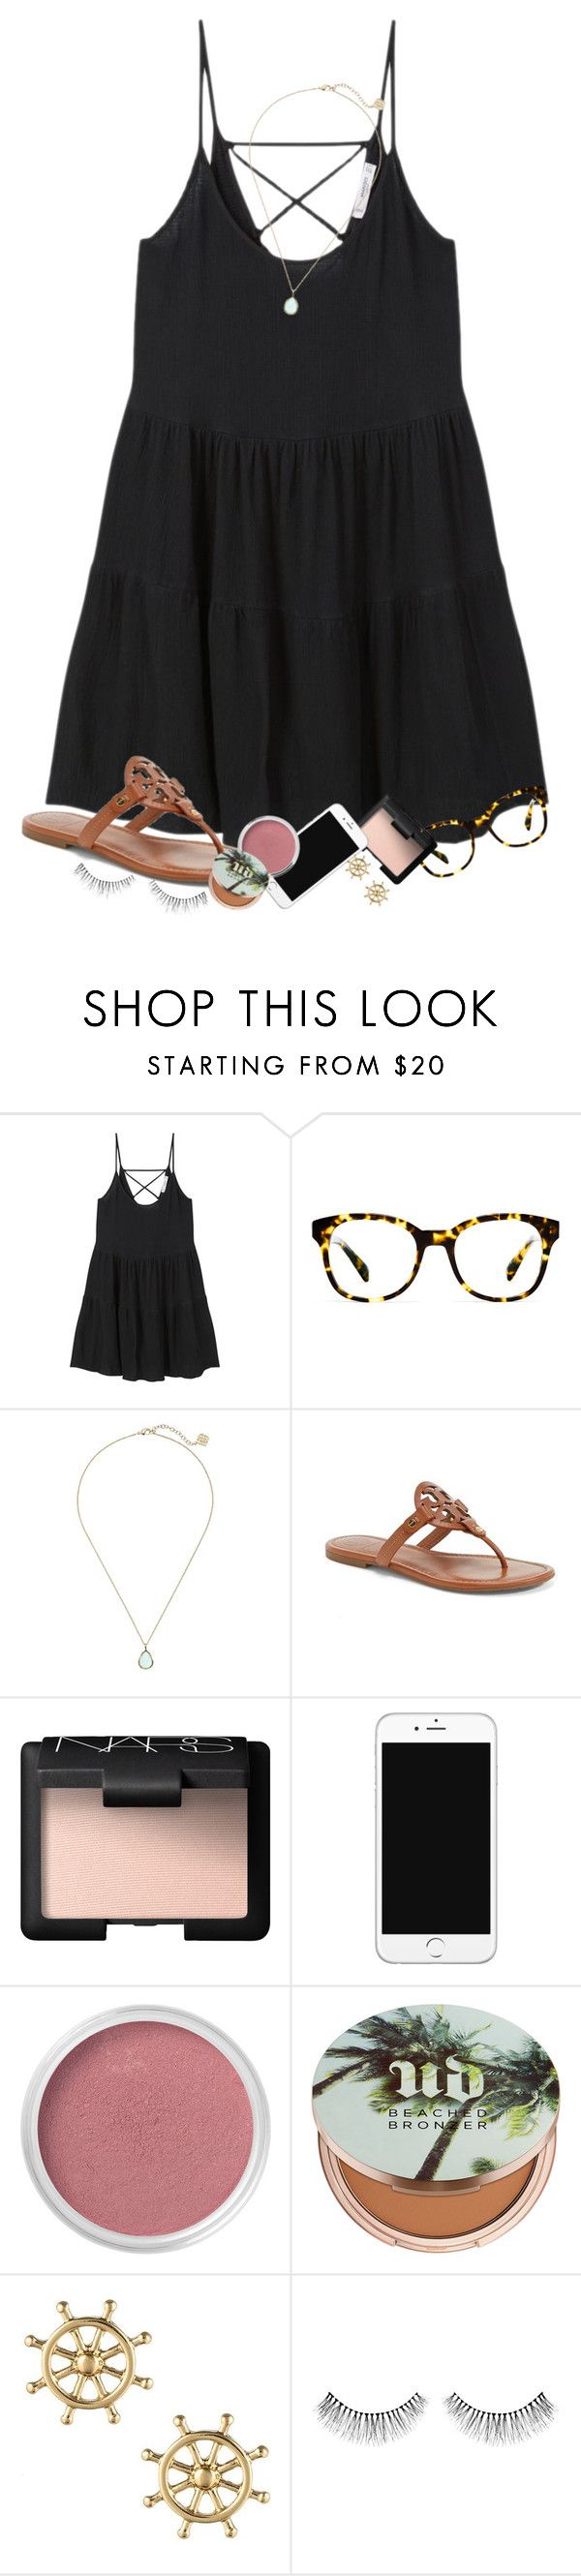 """I made it through the first week of school"" by erinlmarkel ❤ liked on Polyvore featuring MANGO, Warby Parker, Kendra Scott, Tory Burch, NARS Cosmetics, Bare Escentuals, Urban Decay and Sperry"